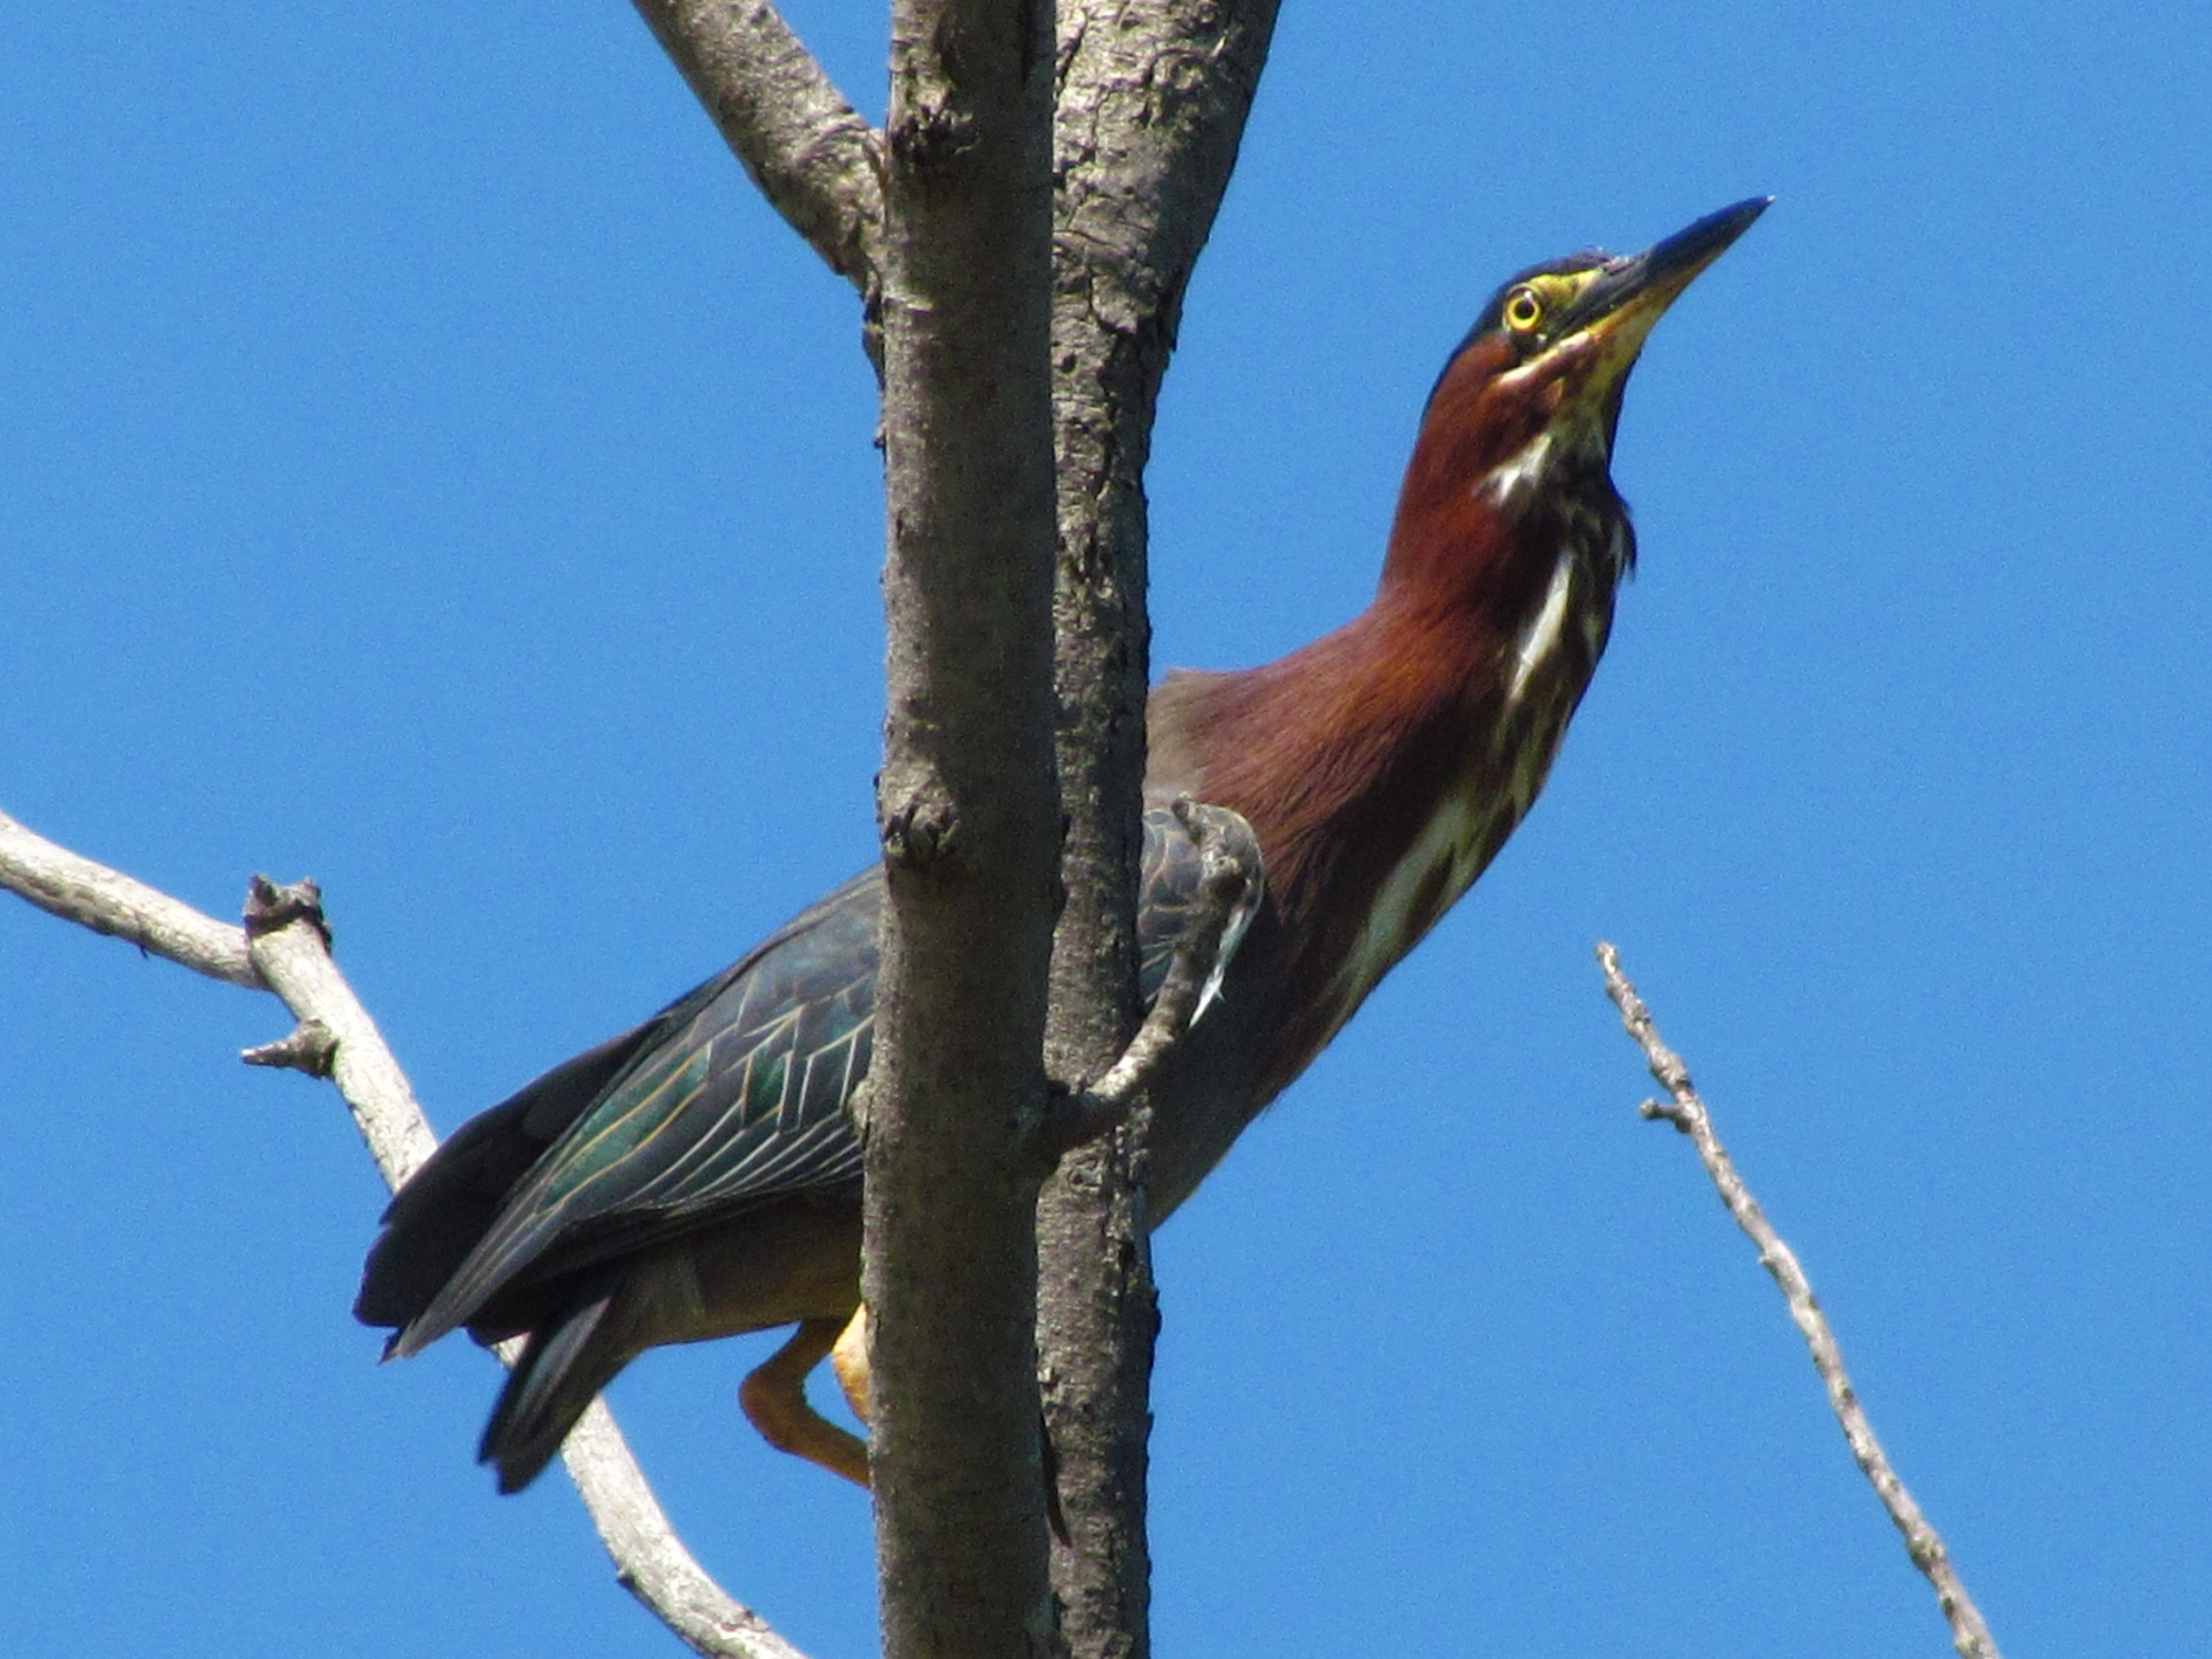 A green heron looks up from its perch on a branch